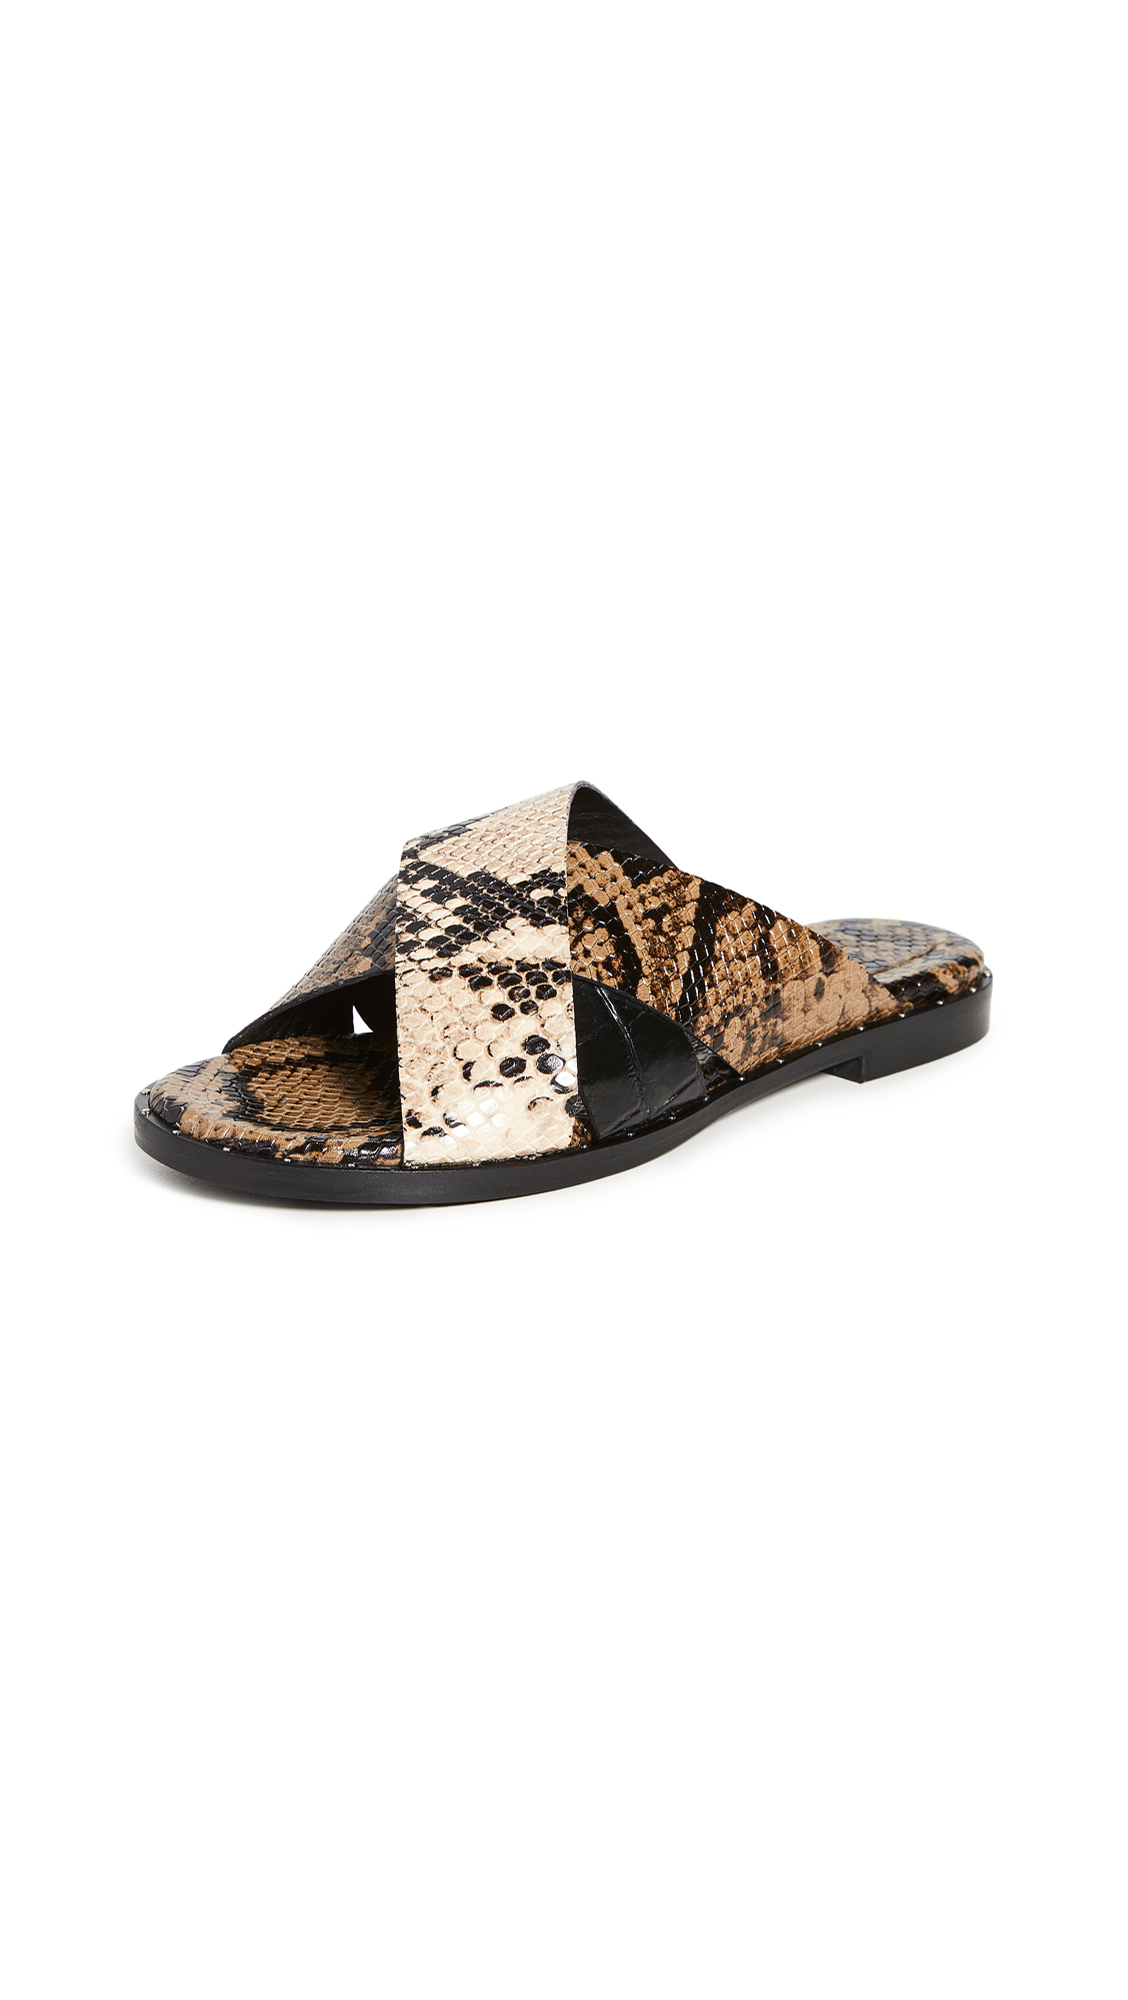 Freda Salvador Dew Cross Strap Sandals – 30% Off Sale